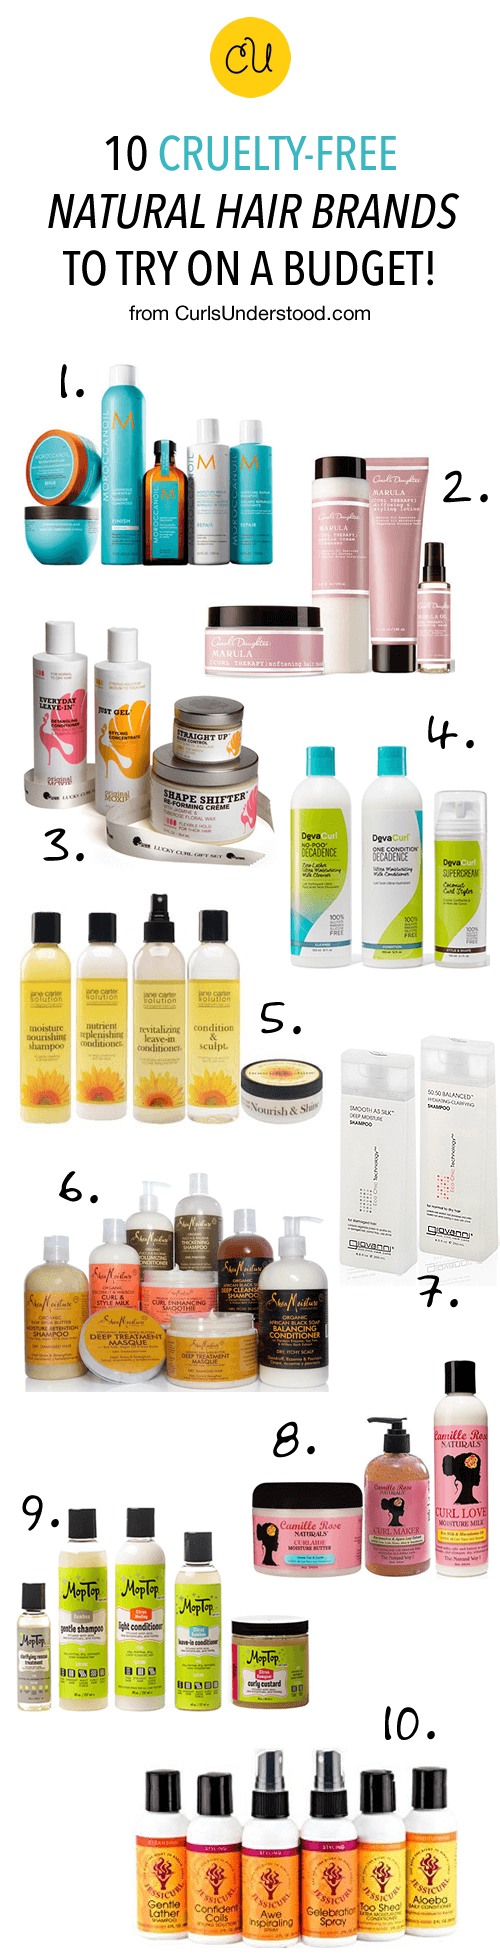 10 Cruelty Free Natural Hair Brands To Try On A Budget Curls